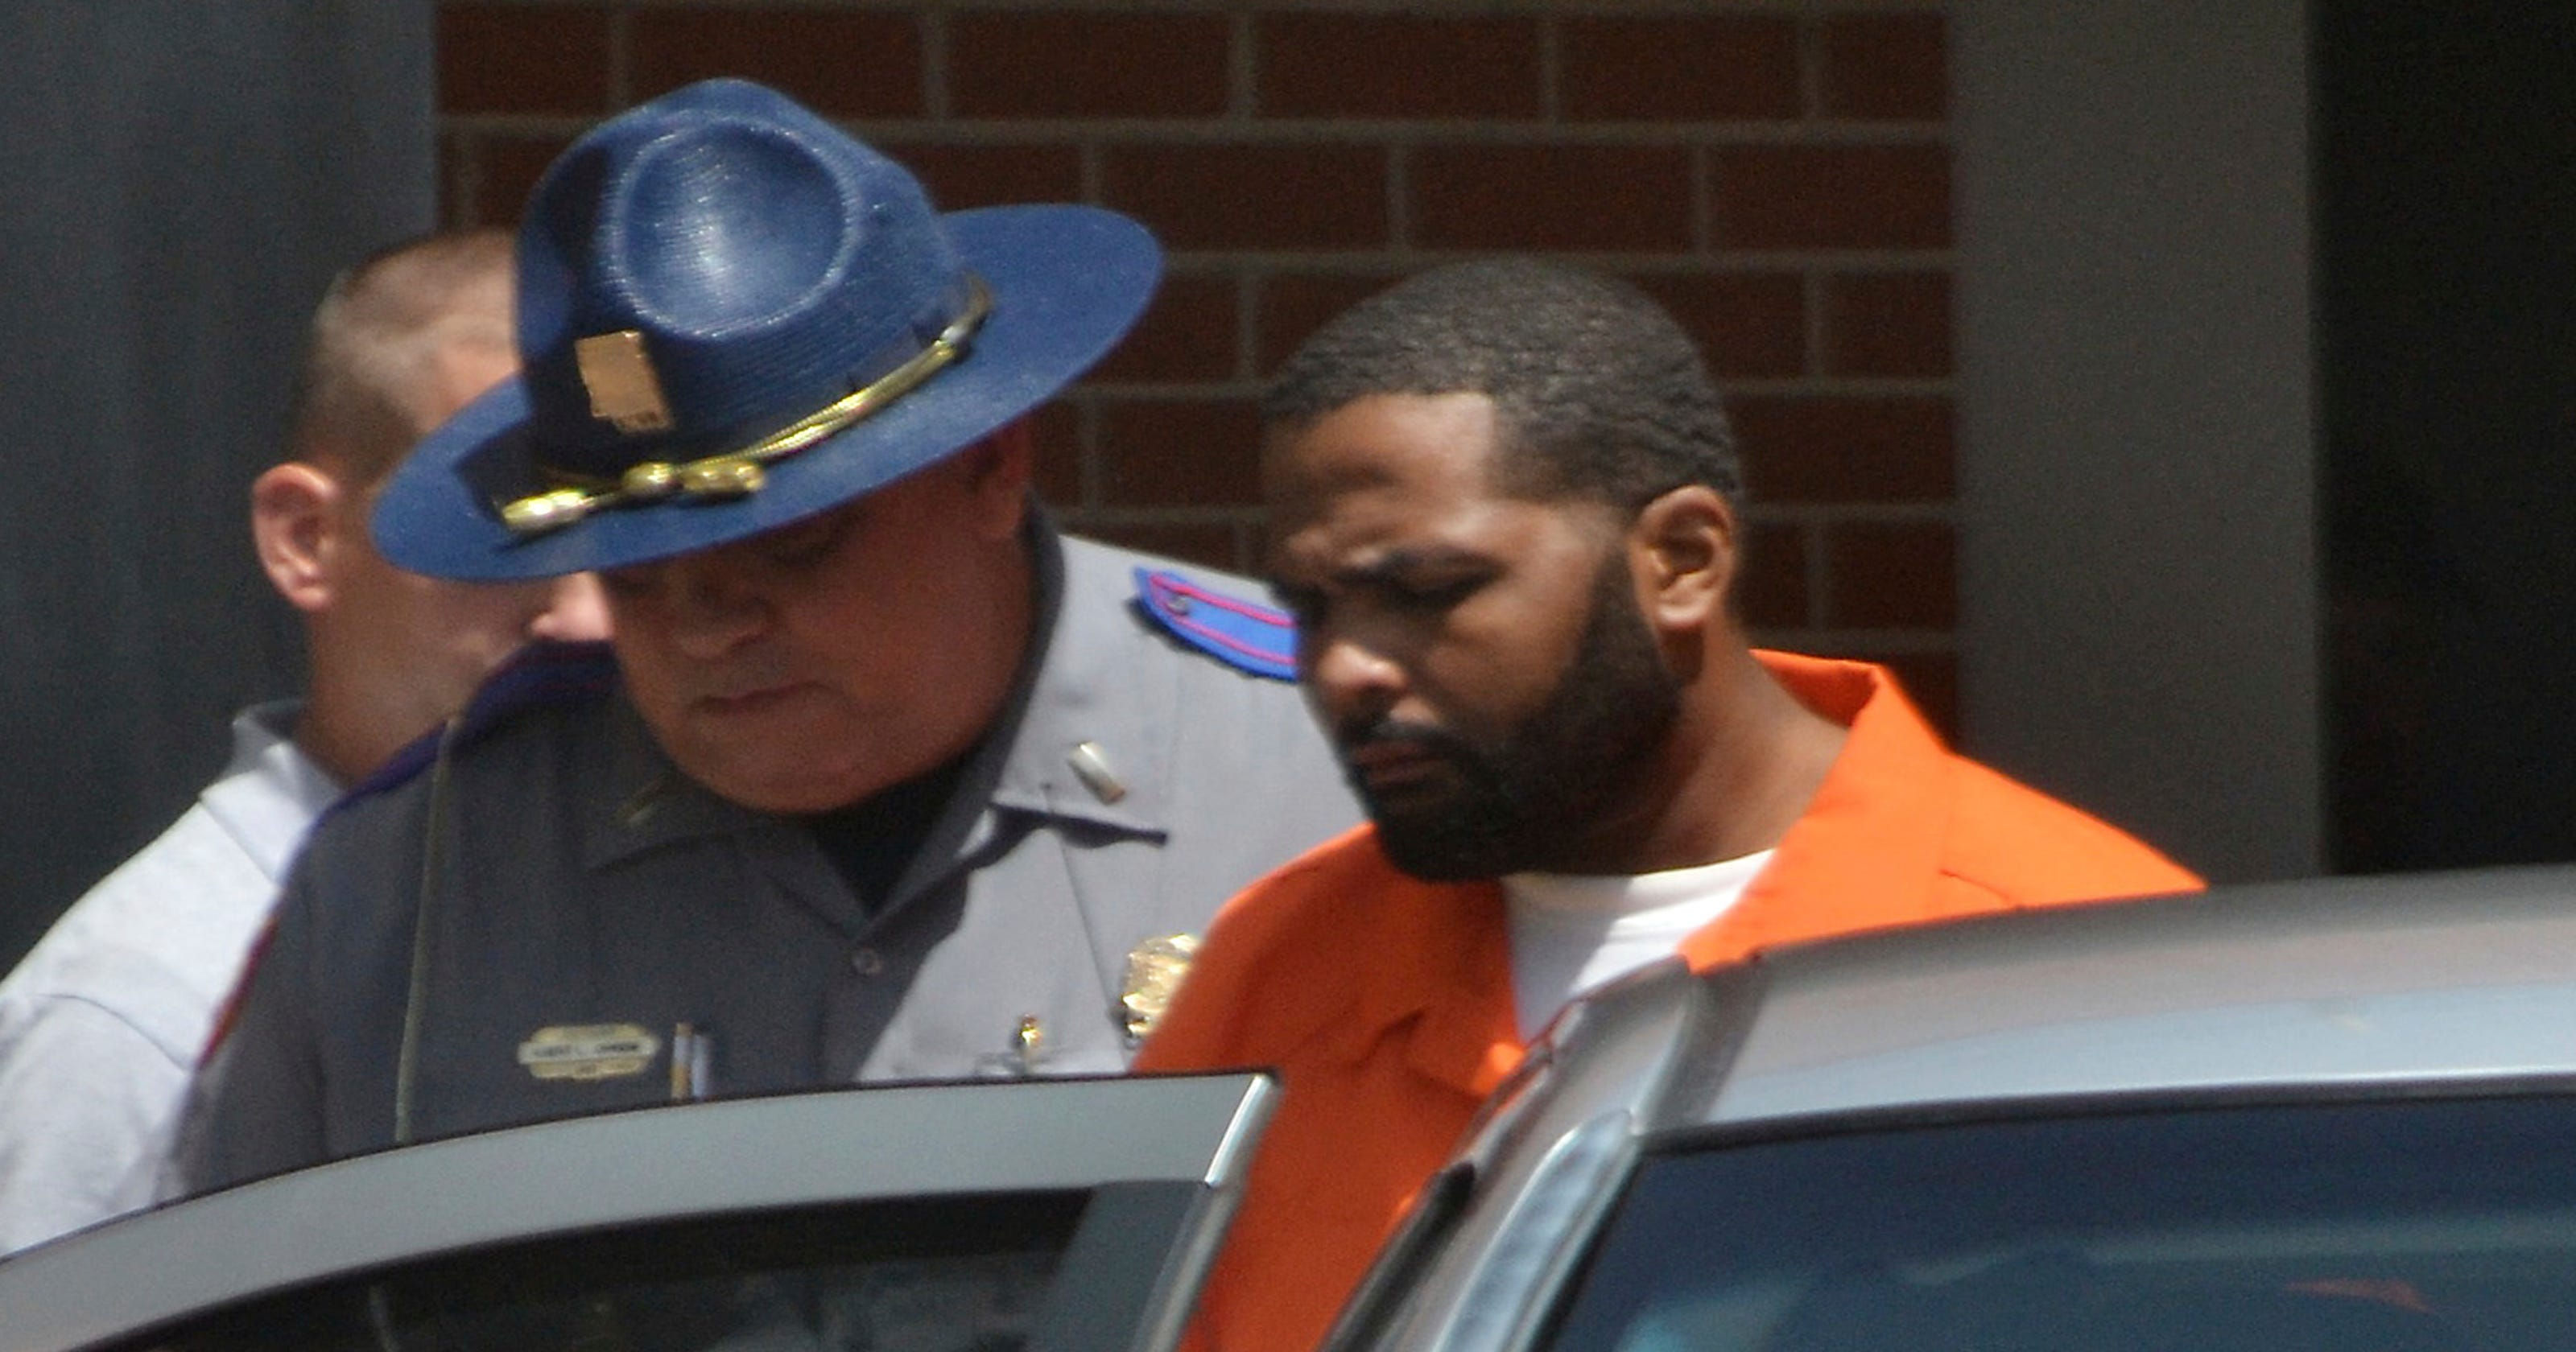 Mississippi man to face grand jury in killing spree